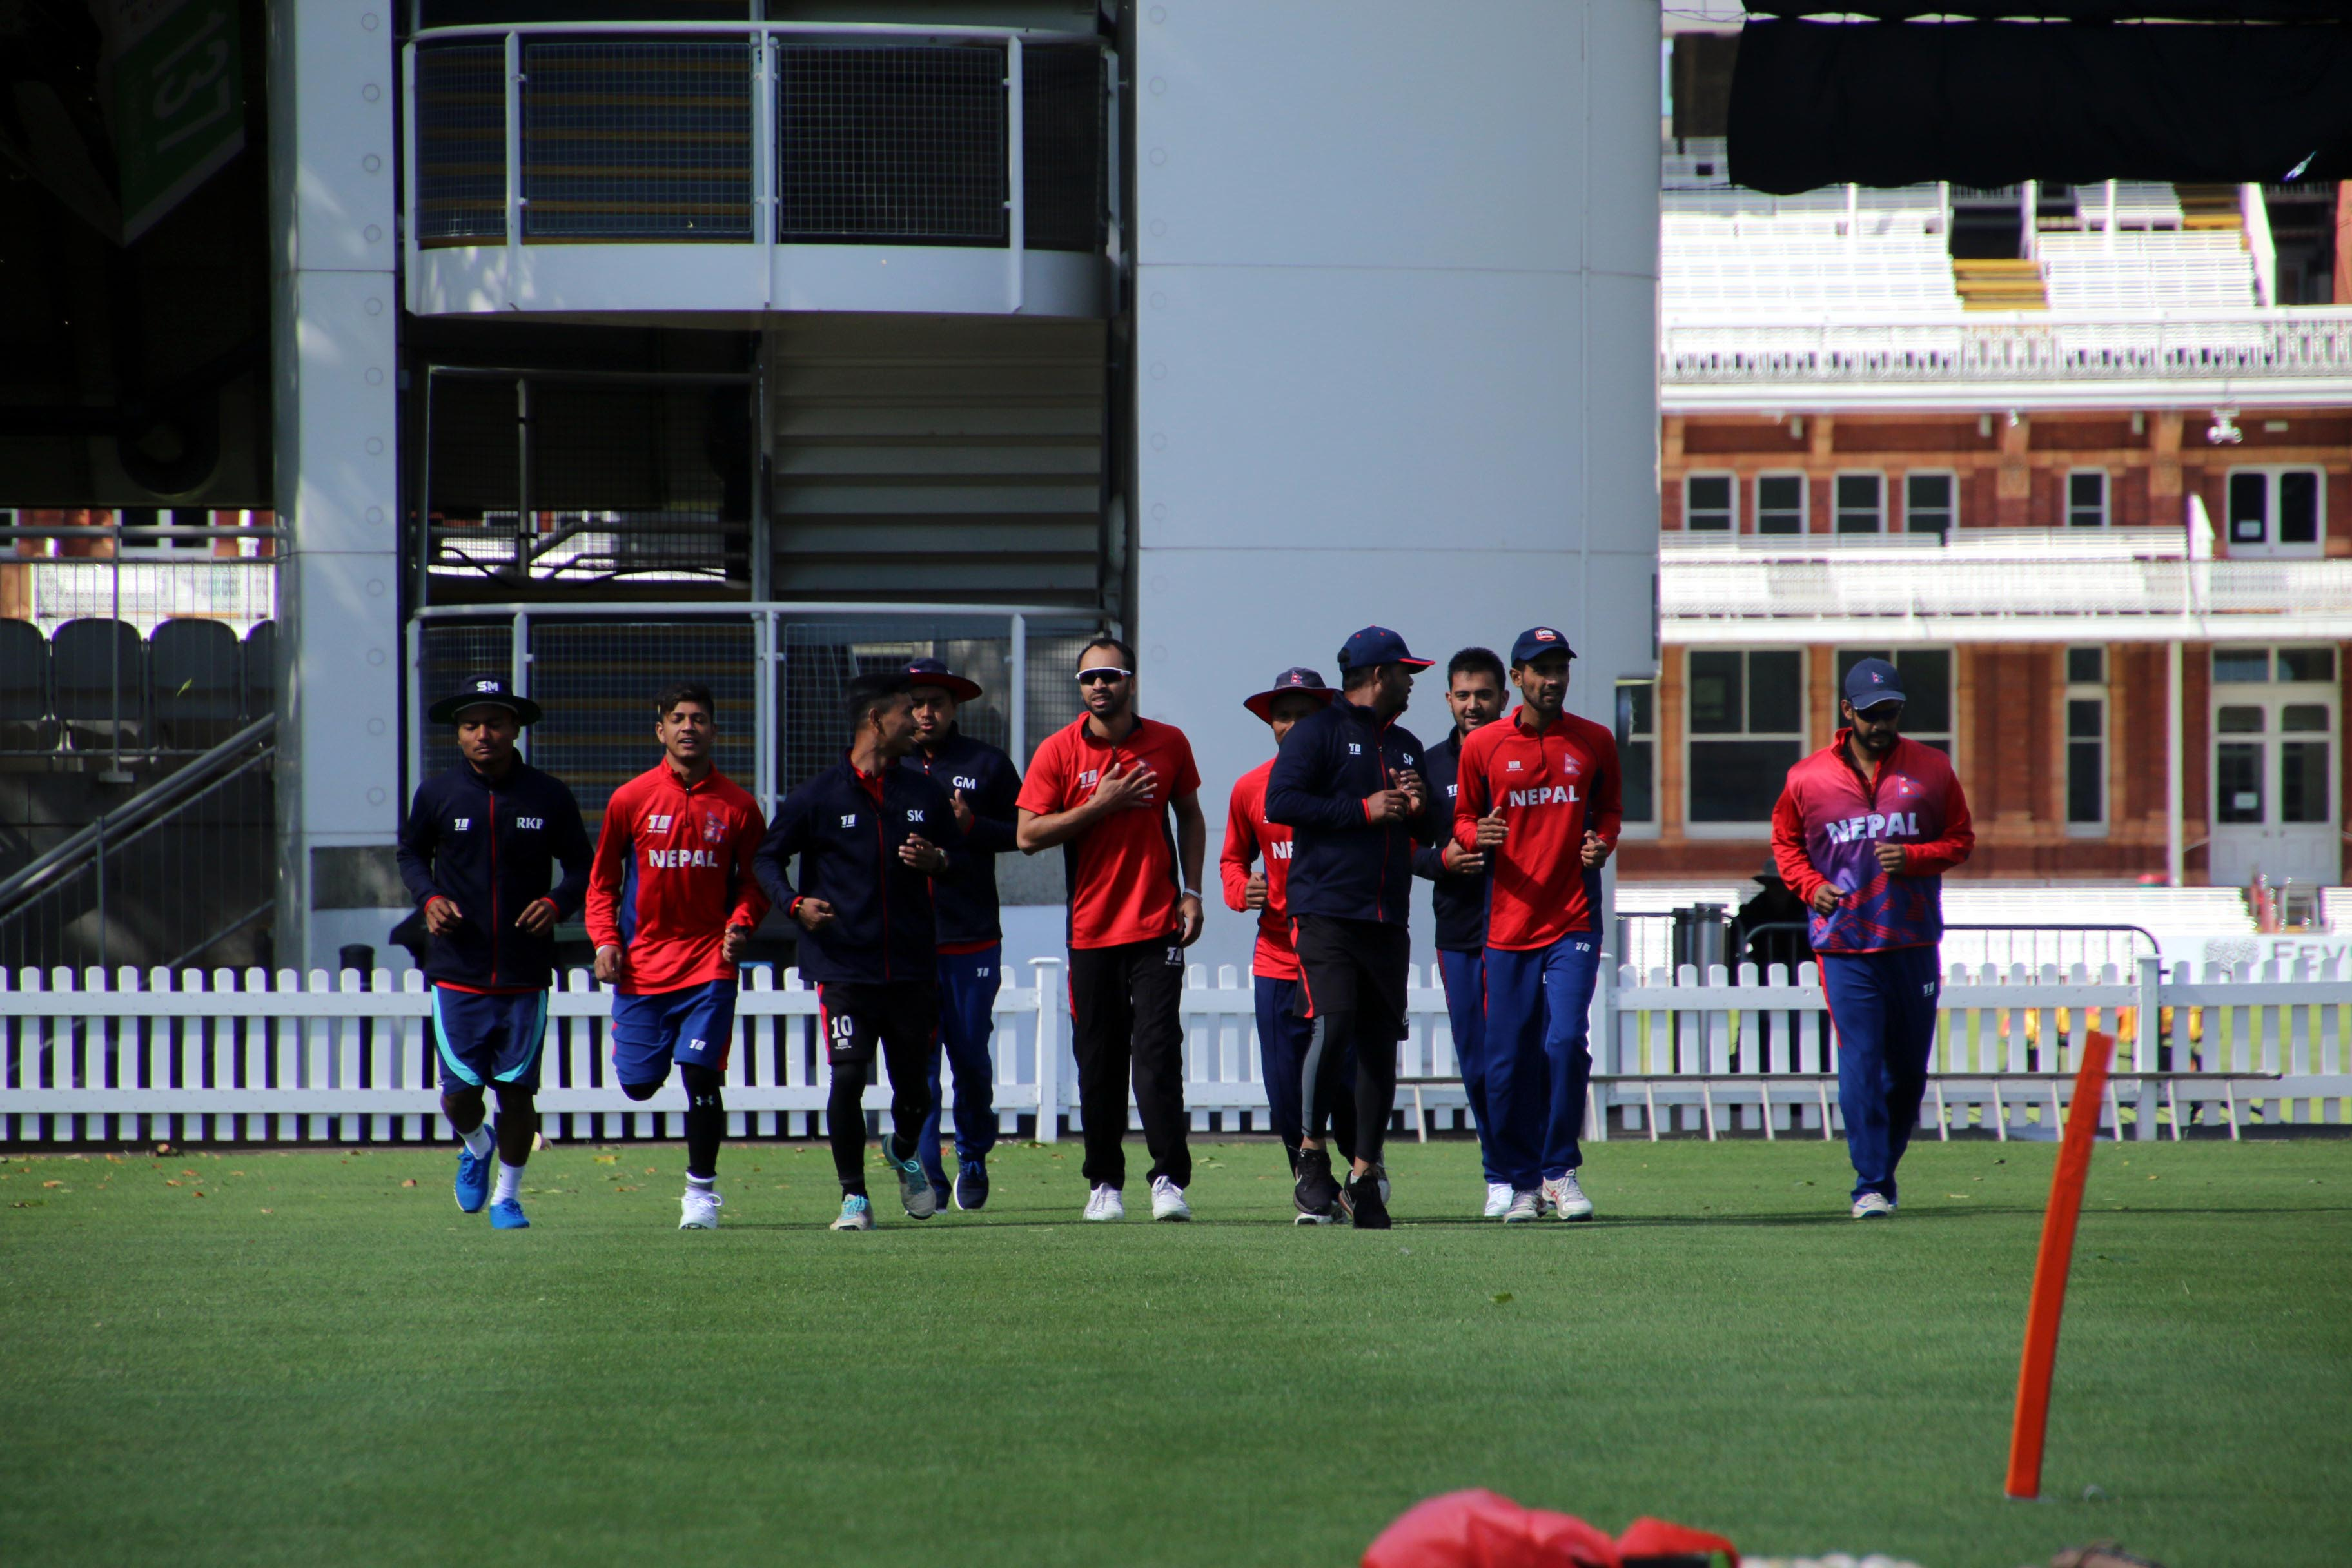 Players of Nepal National Cricket Team train at Lord's Cricket ground in London, England on Saturday, July 28, 2018,  a day prior to T20 Triangular Tournament involving Nepal, MCC and The Netherlands. Photo:  Raman Shiwakoti/ Nepal Cricket Team